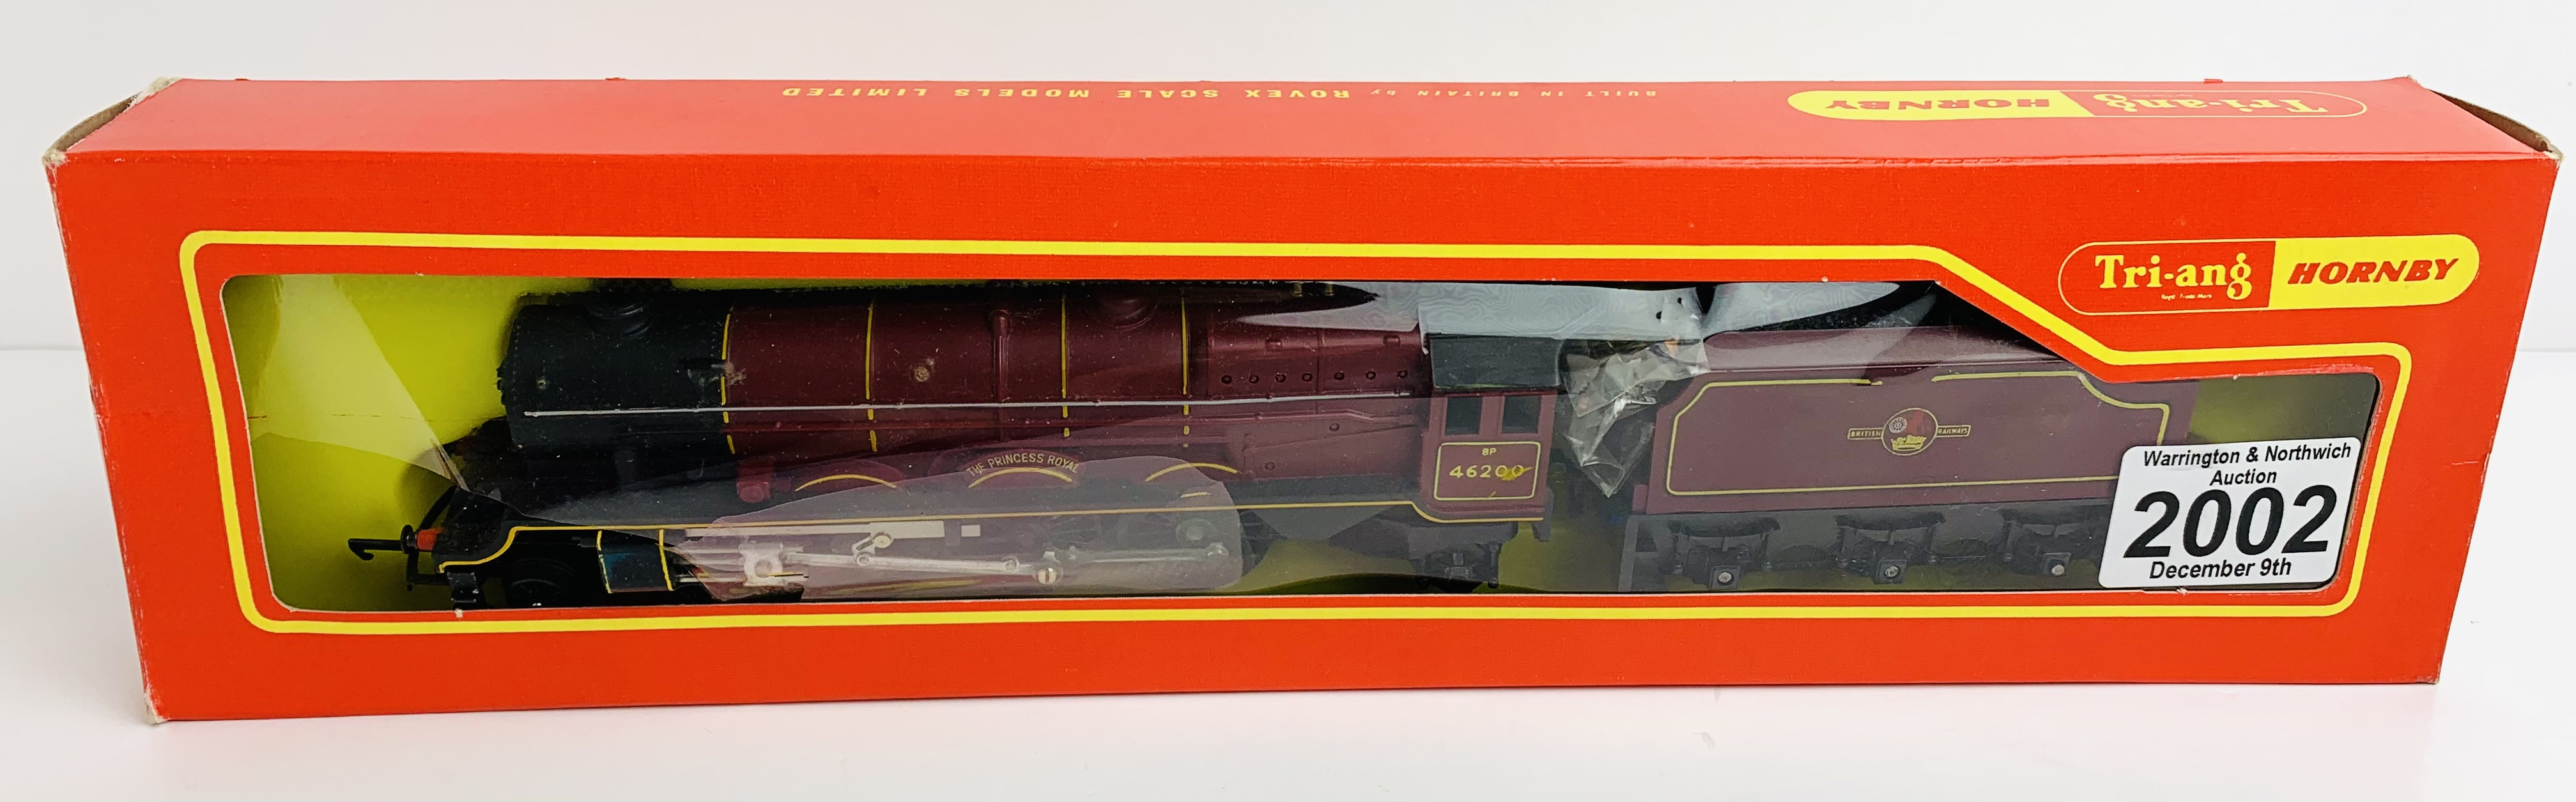 Triang / Hornby R258 'The Princess Royal' BR 46200 Loco - Boxed - P&P Group 1 (£14+VAT for the first